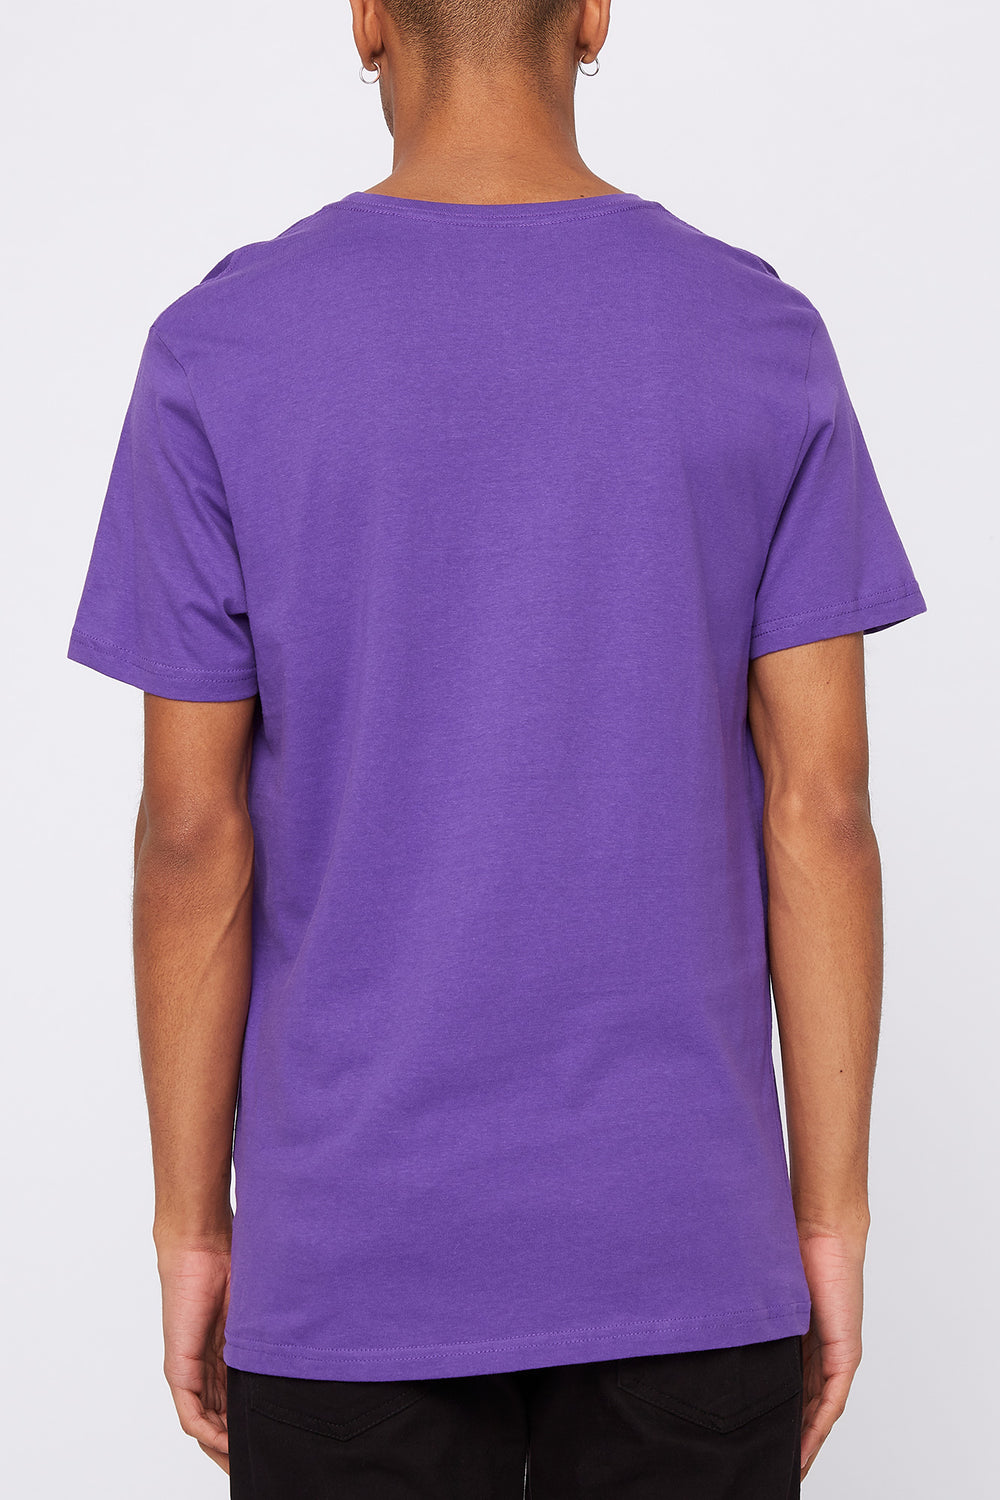 Arsenic Mens Dream Sequence T-Shirt Purple